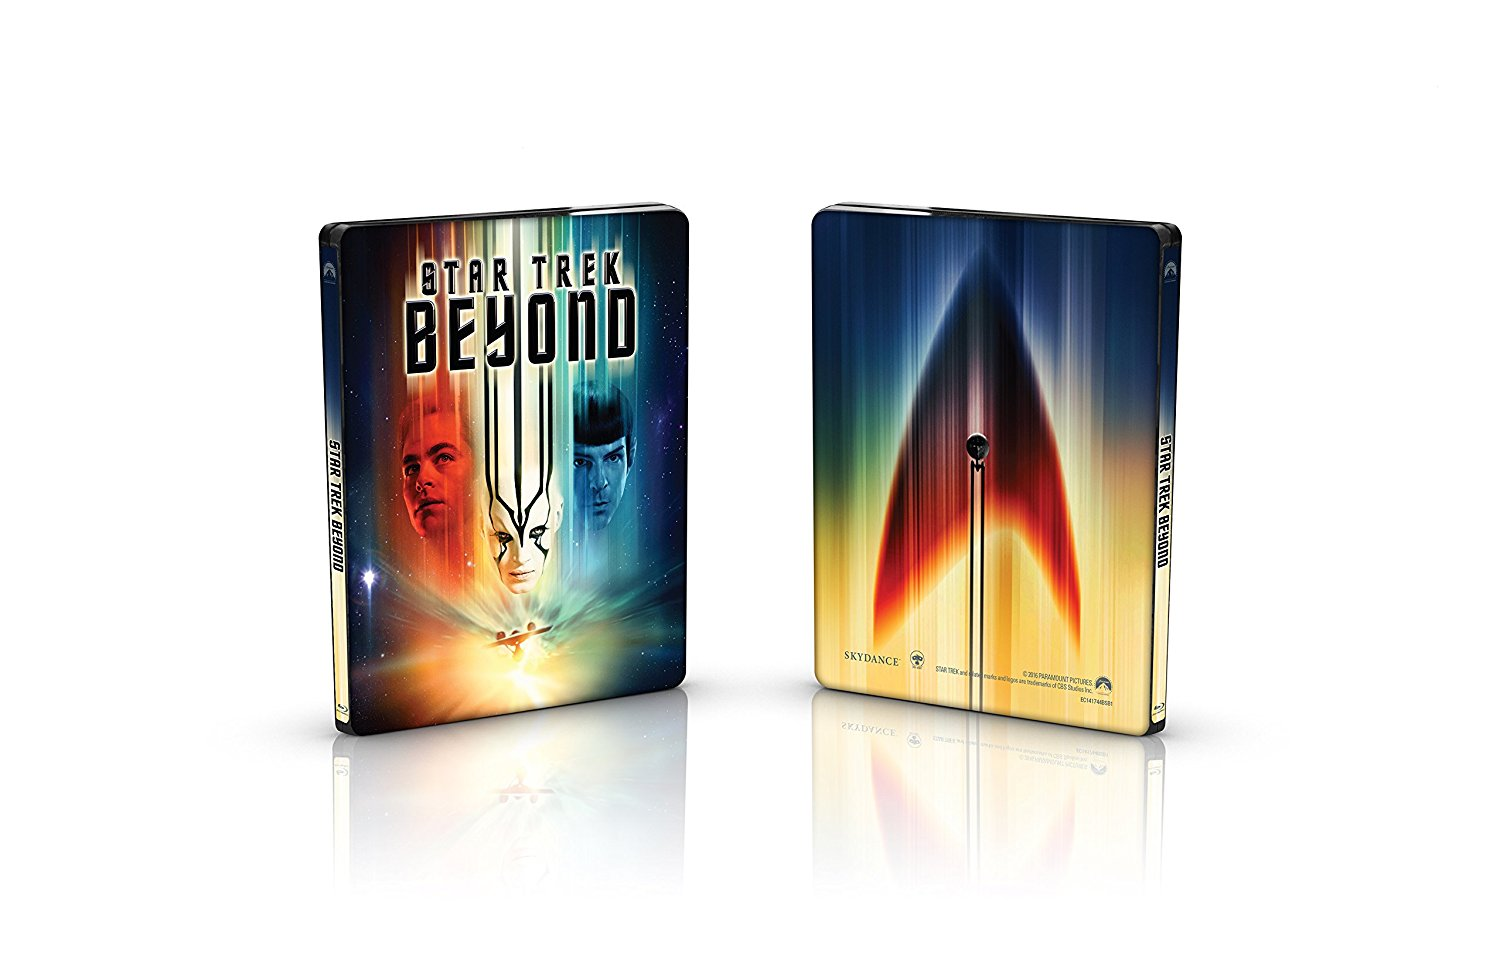 Star Trek Beyond Steelbook (Abbildung: Amazon.de)